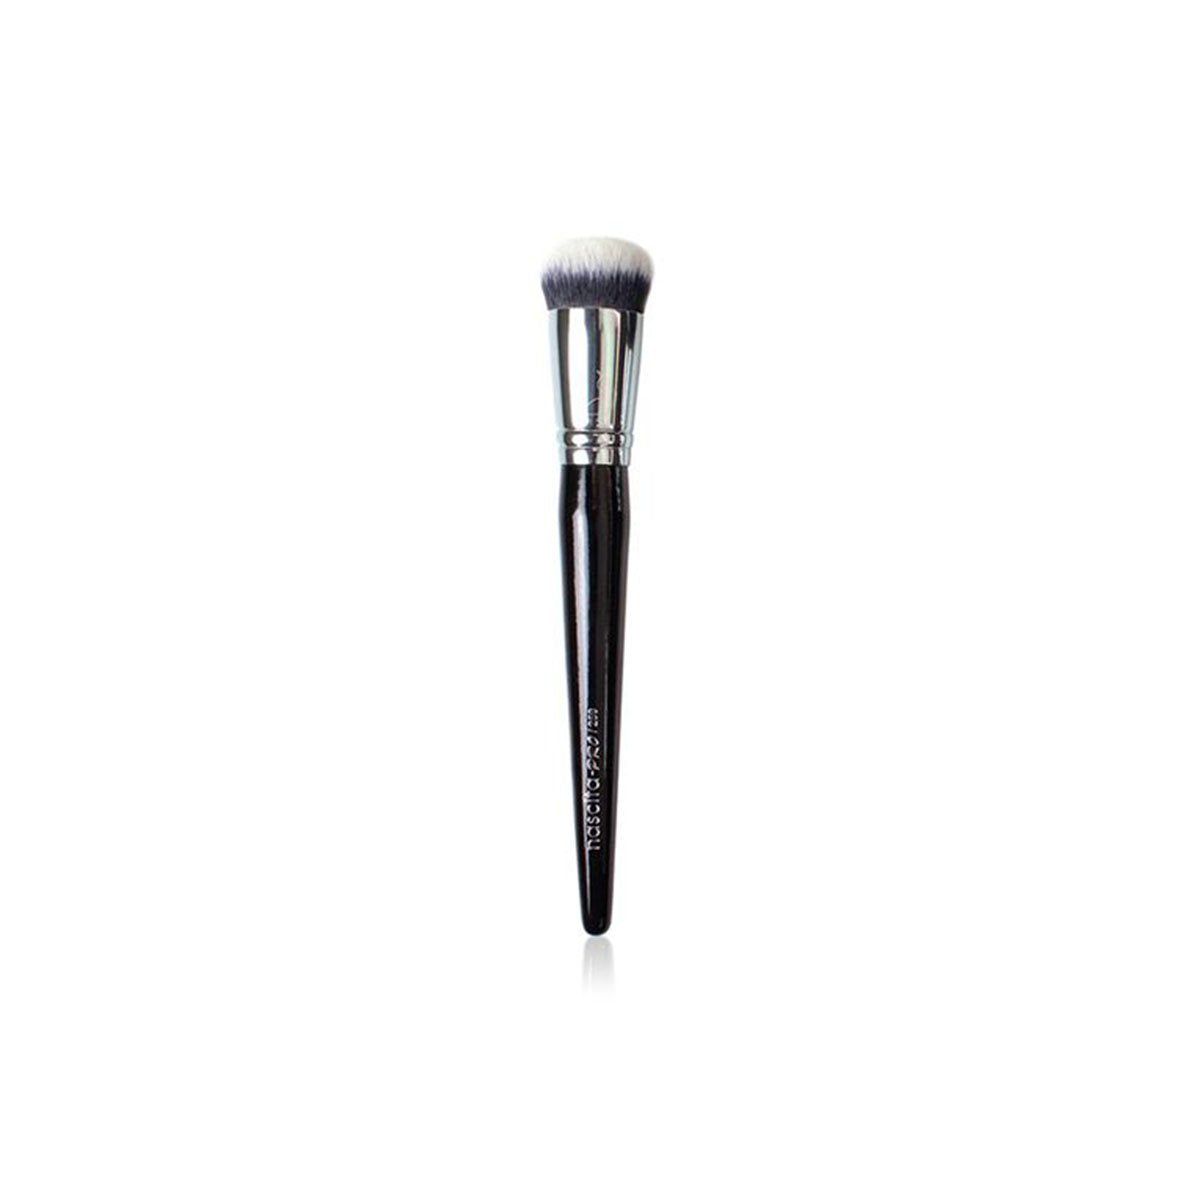 Nascita Pro Brush - Kabuki Foundation